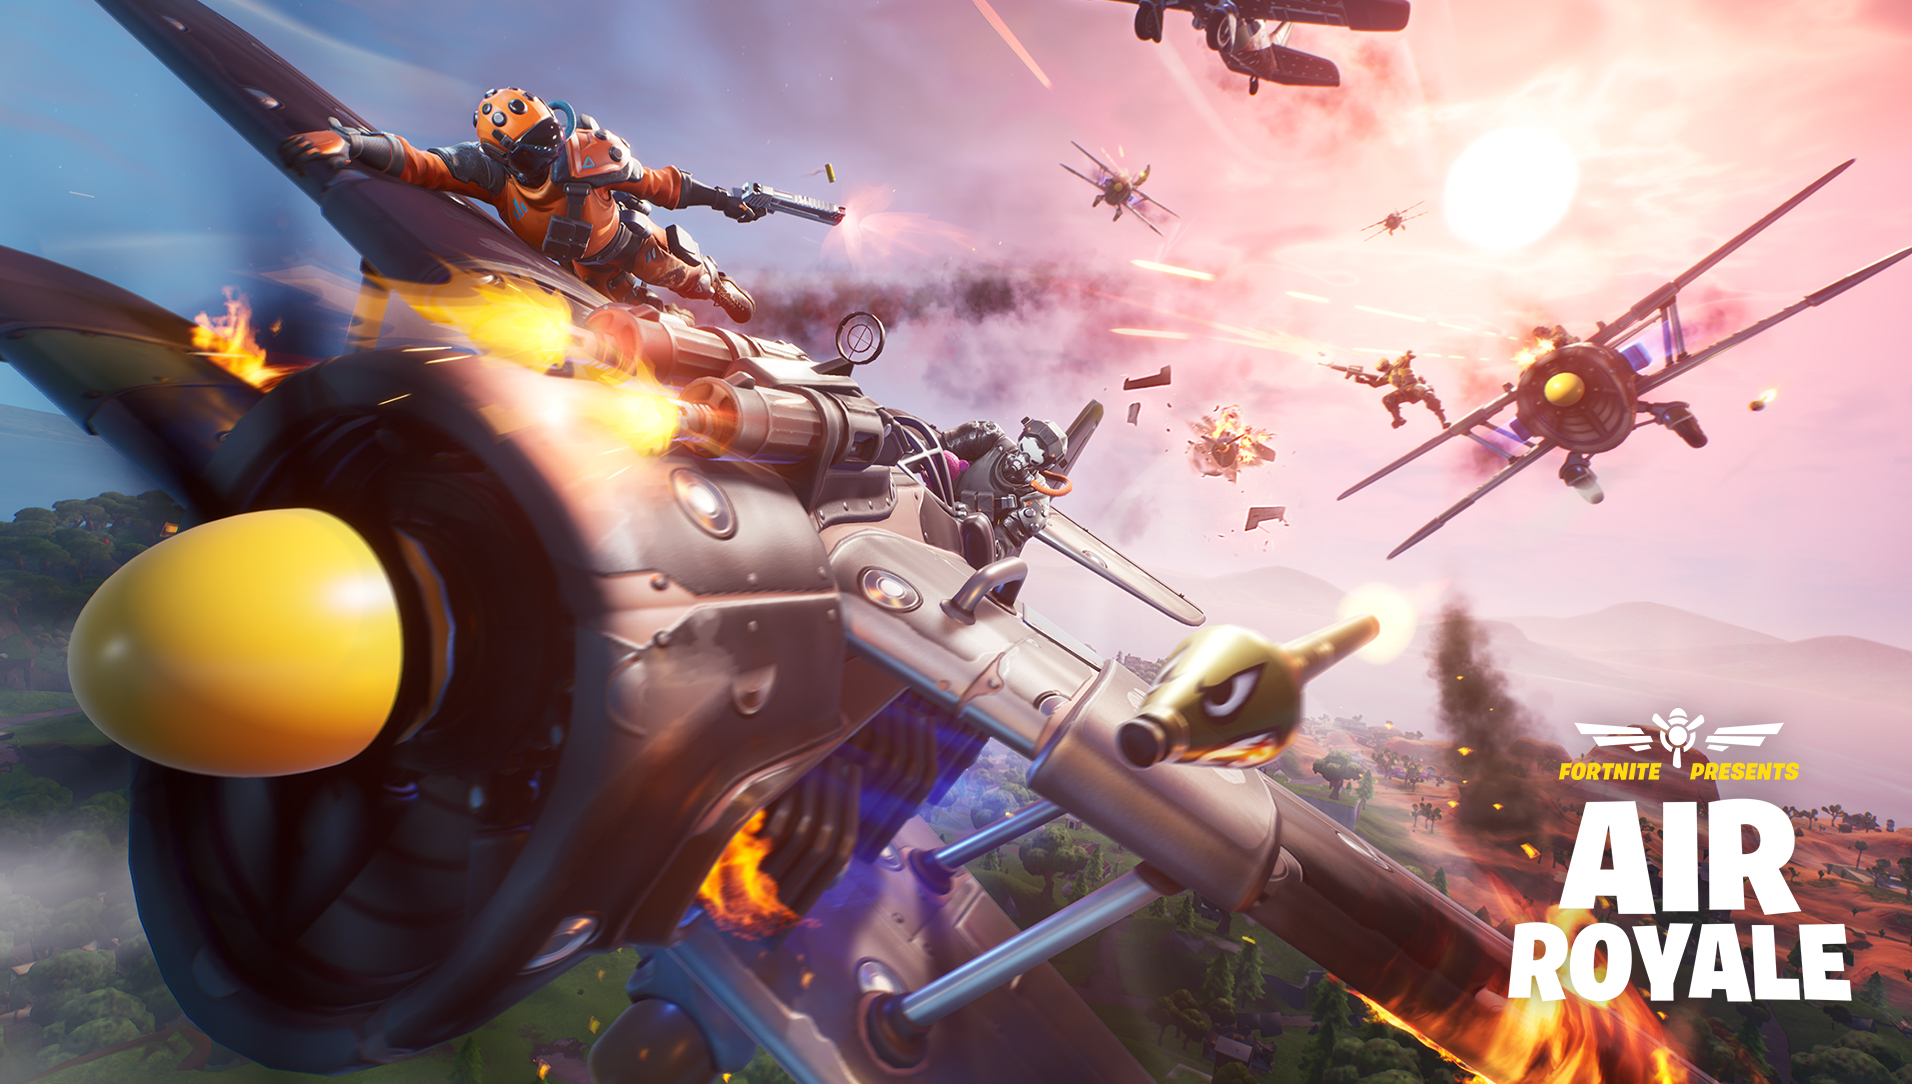 Fortnite V8 40 Update Adds Air Royale Ltm Epic And Legendary